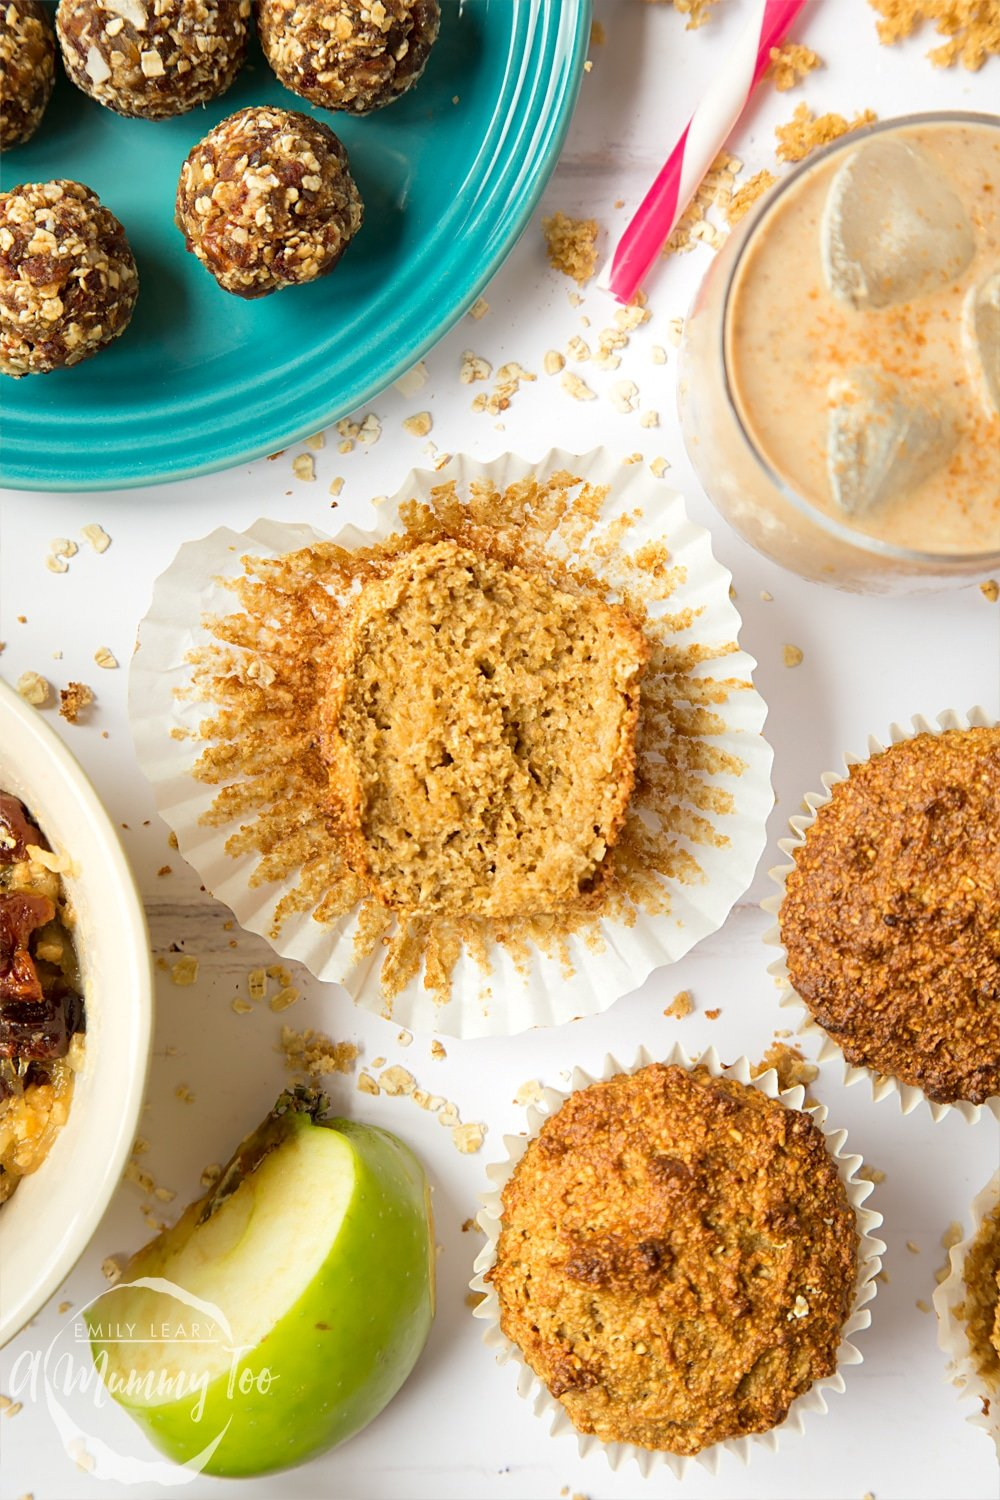 These breakfast bran granola muffins are a fresh take on bran muffins, featuring granola and applesauce. Delicious!